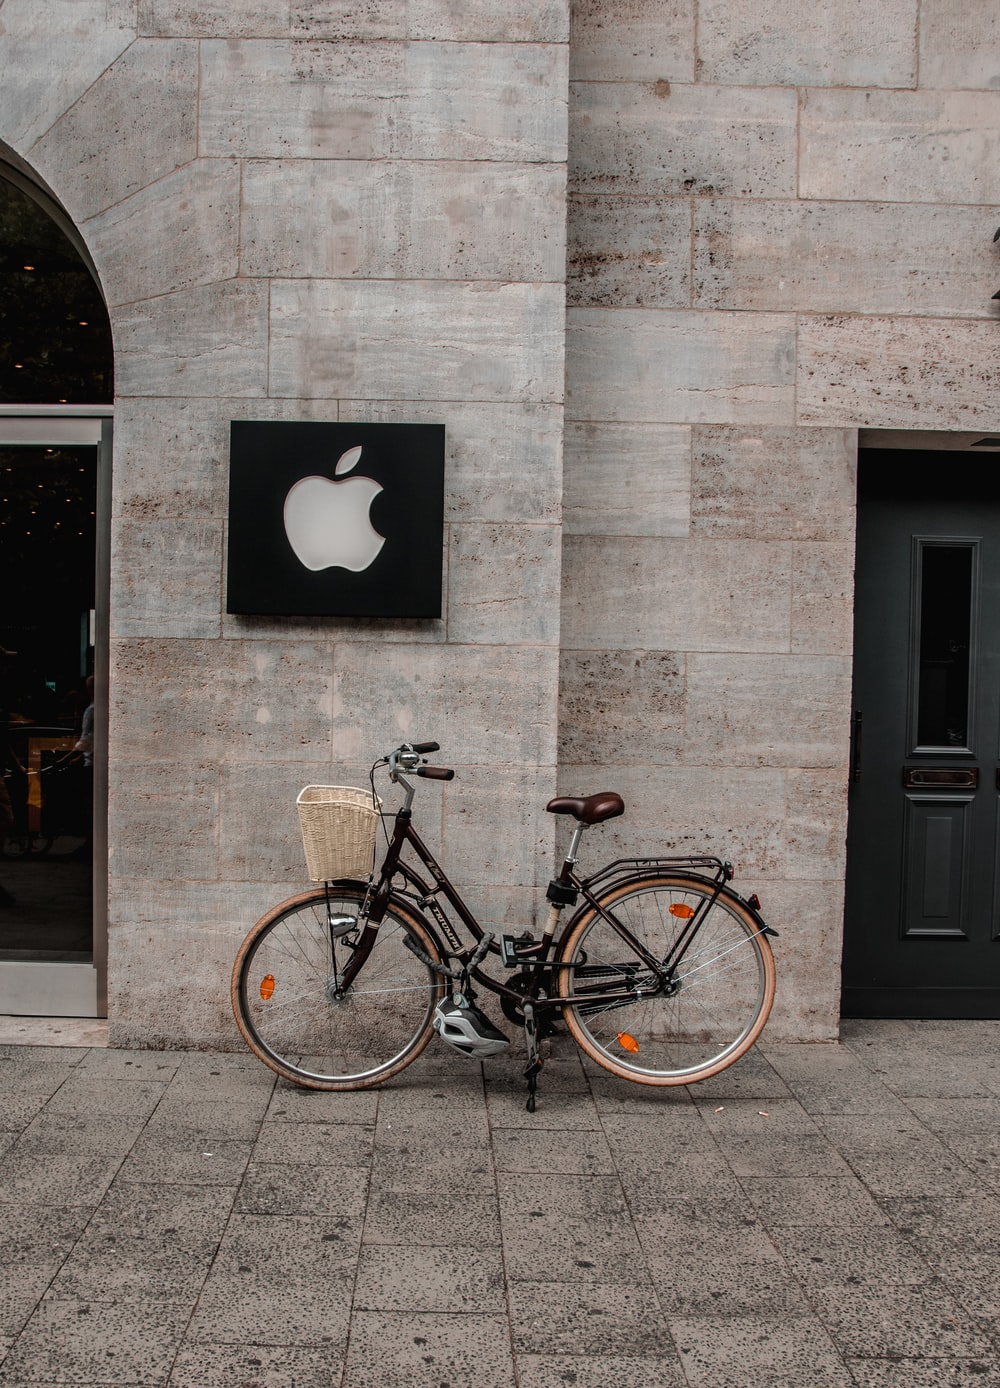 black commuter bicycle parked beside building